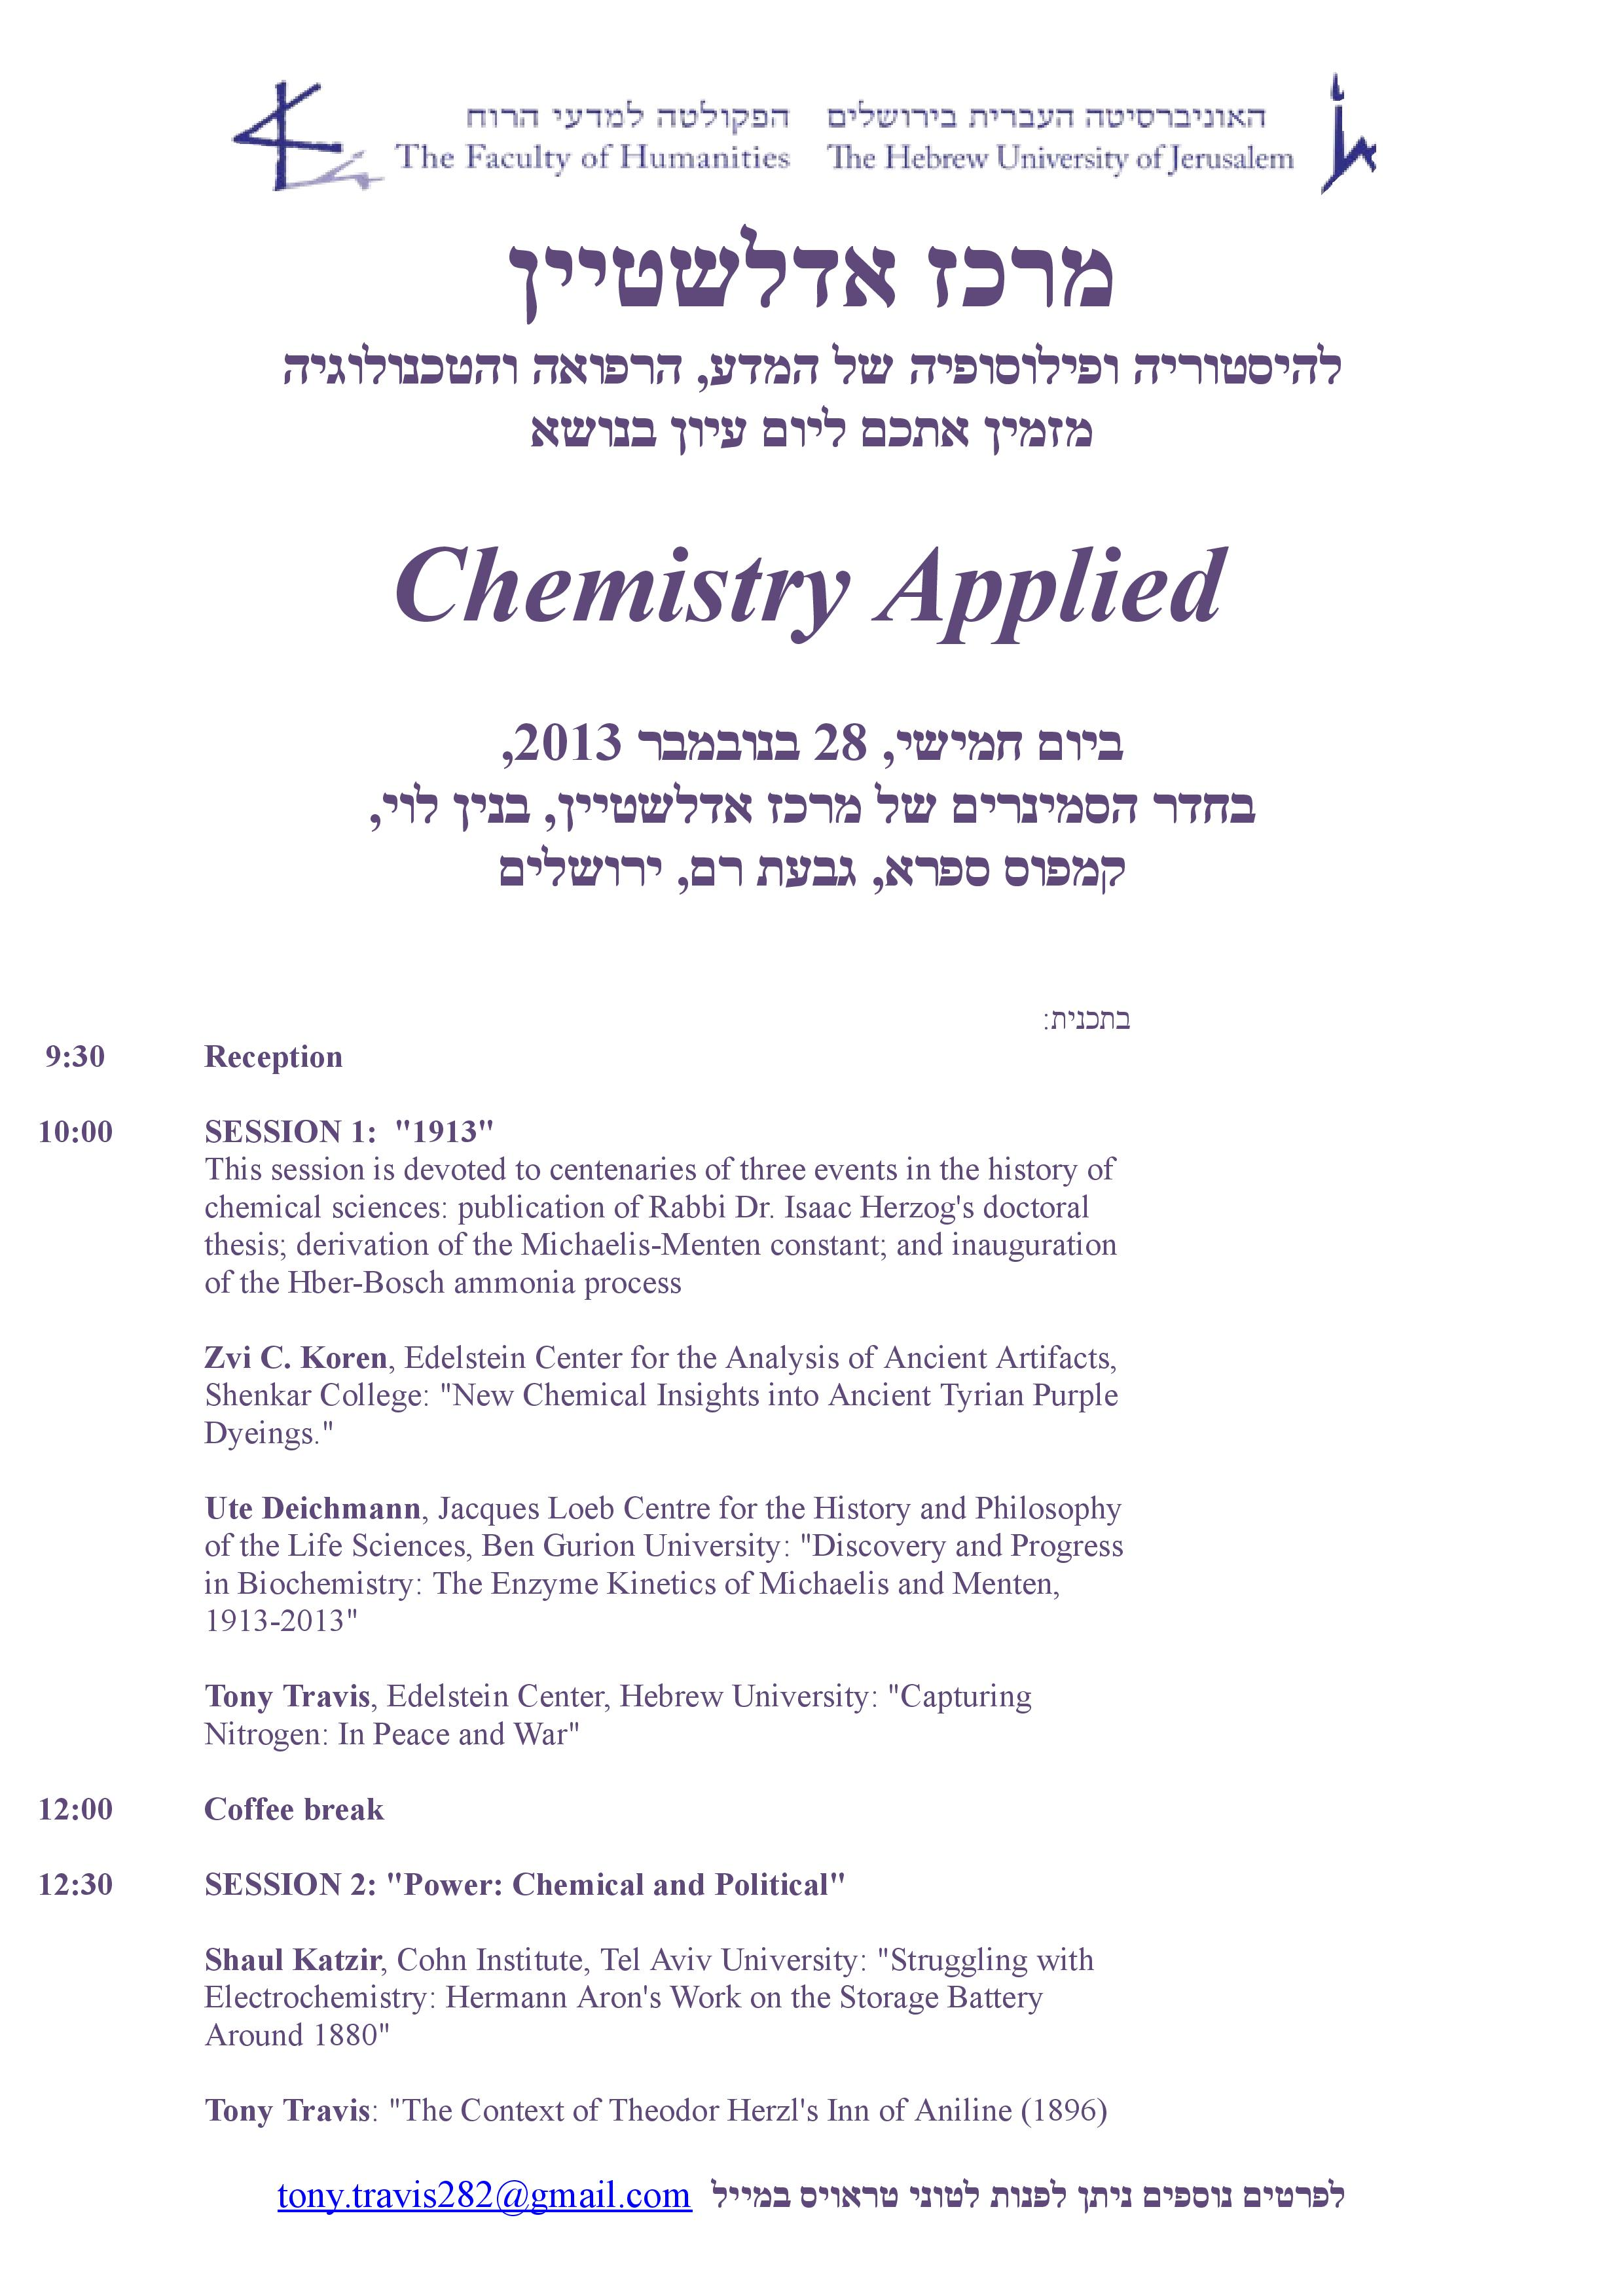 chemistry Applied - 28.11.2013-page-001